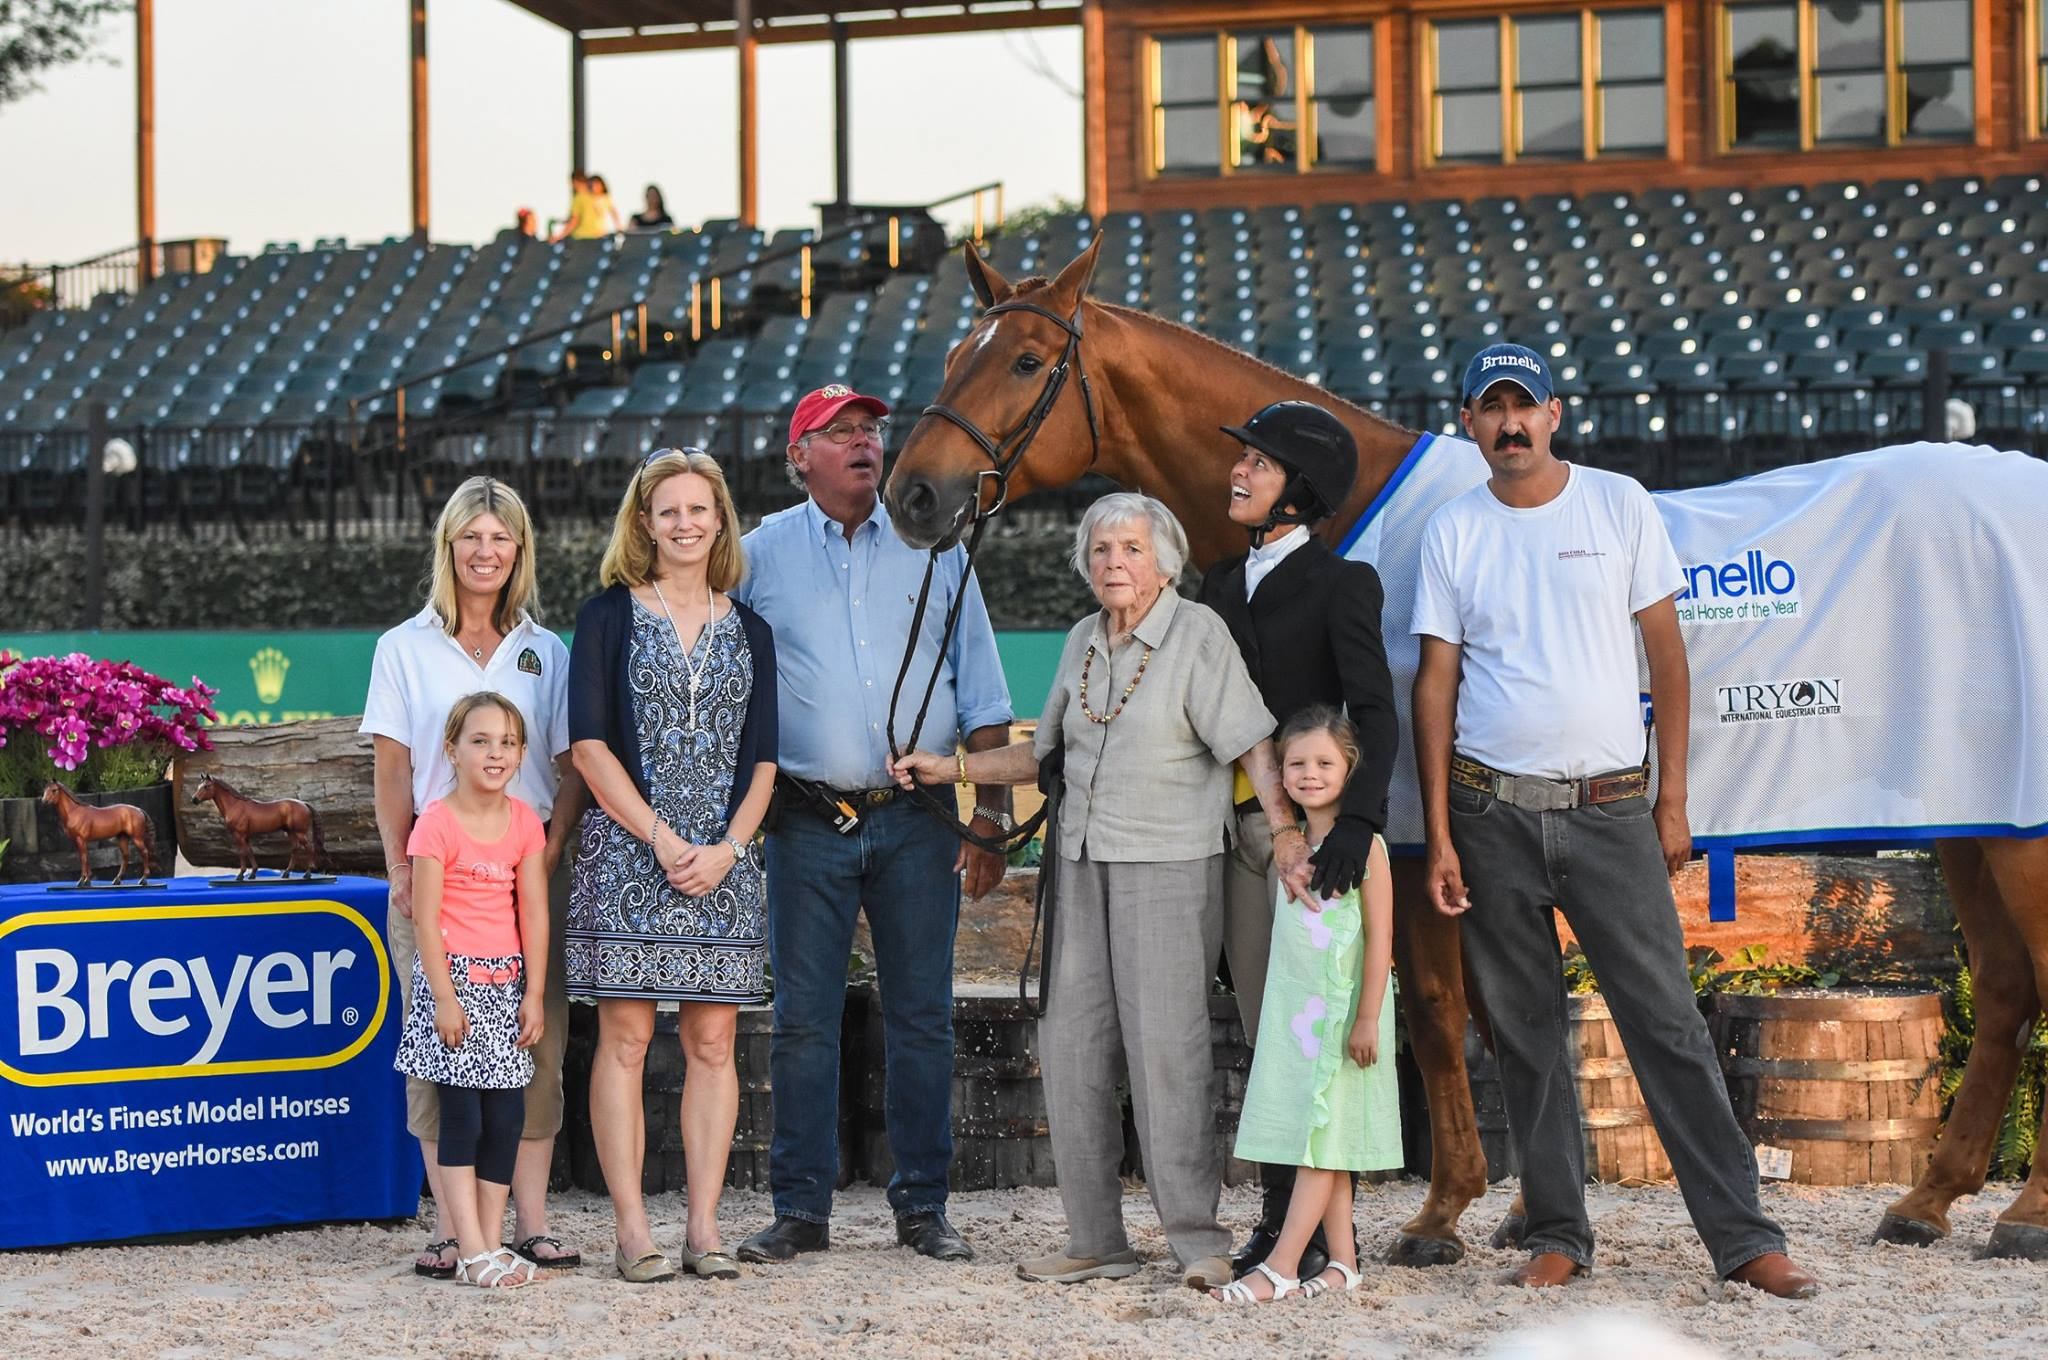 Brunello's Breyer Celebration at the Tryon International Equestrian Center